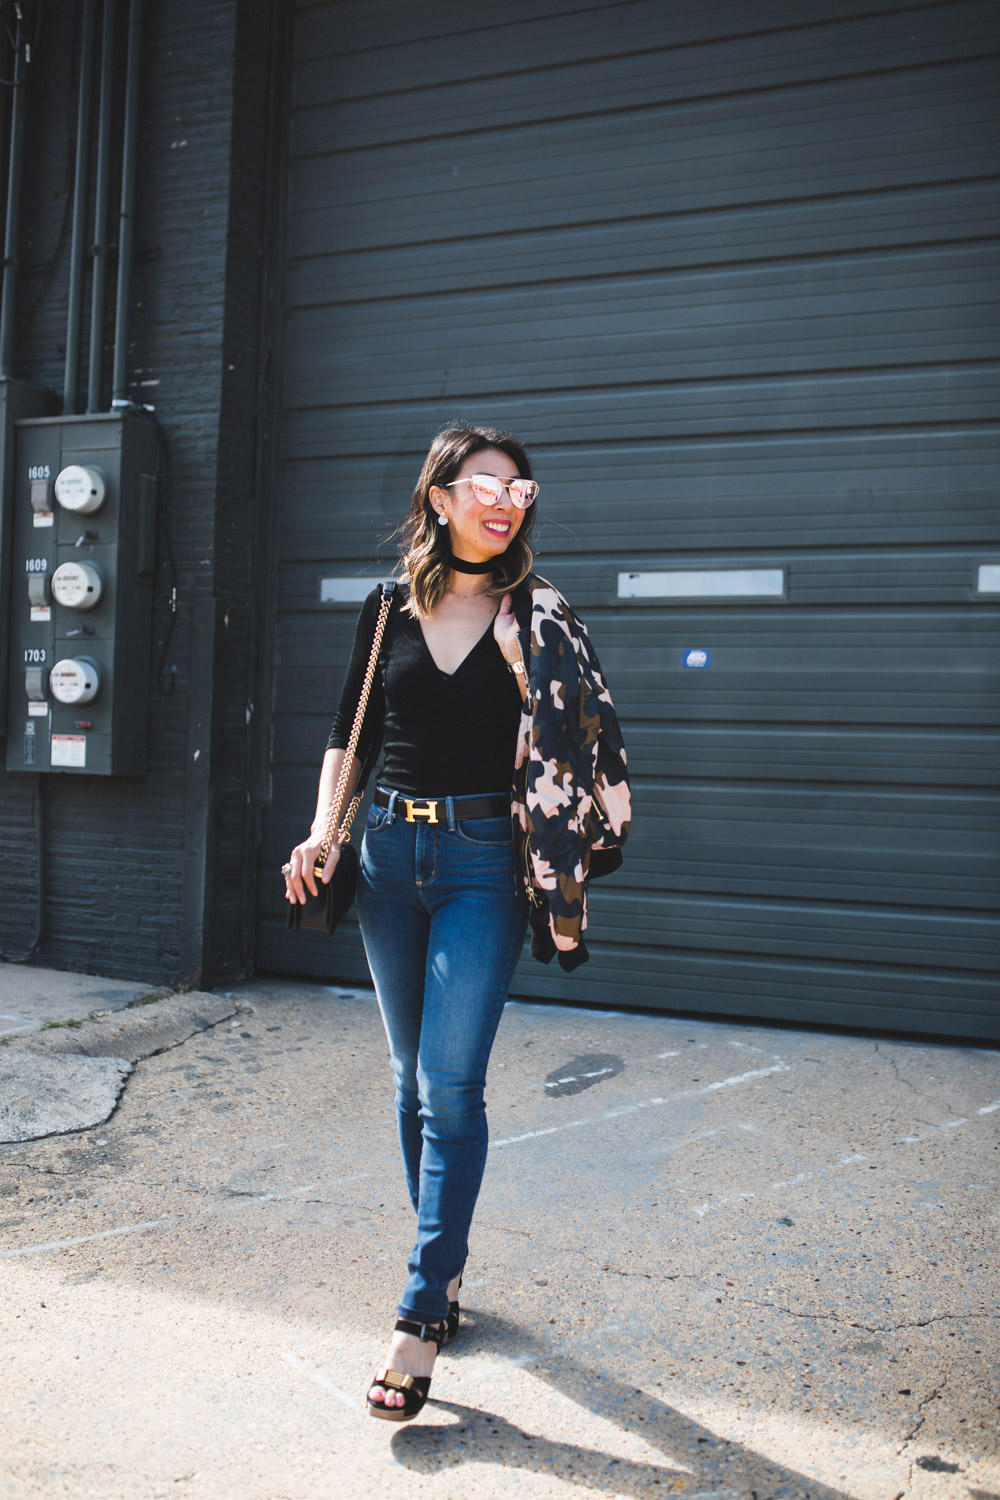 topshop camo bomber jacket with black body suit, choker, and NYDJ skinny jeans